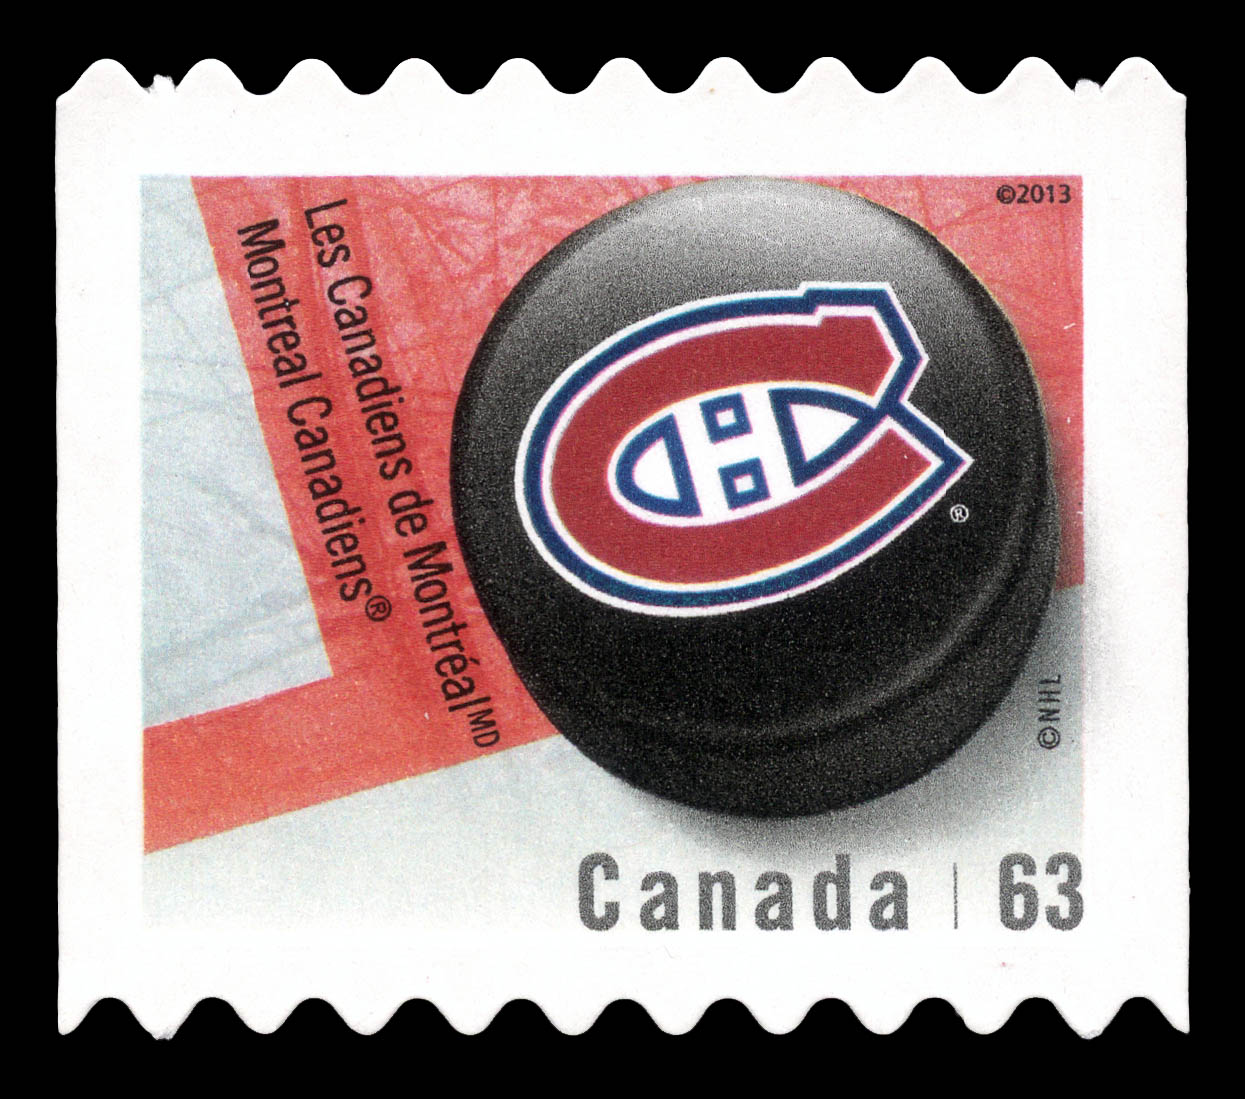 Montreal Canadiens Canada Postage Stamp | NHL Canadian Team Pucks